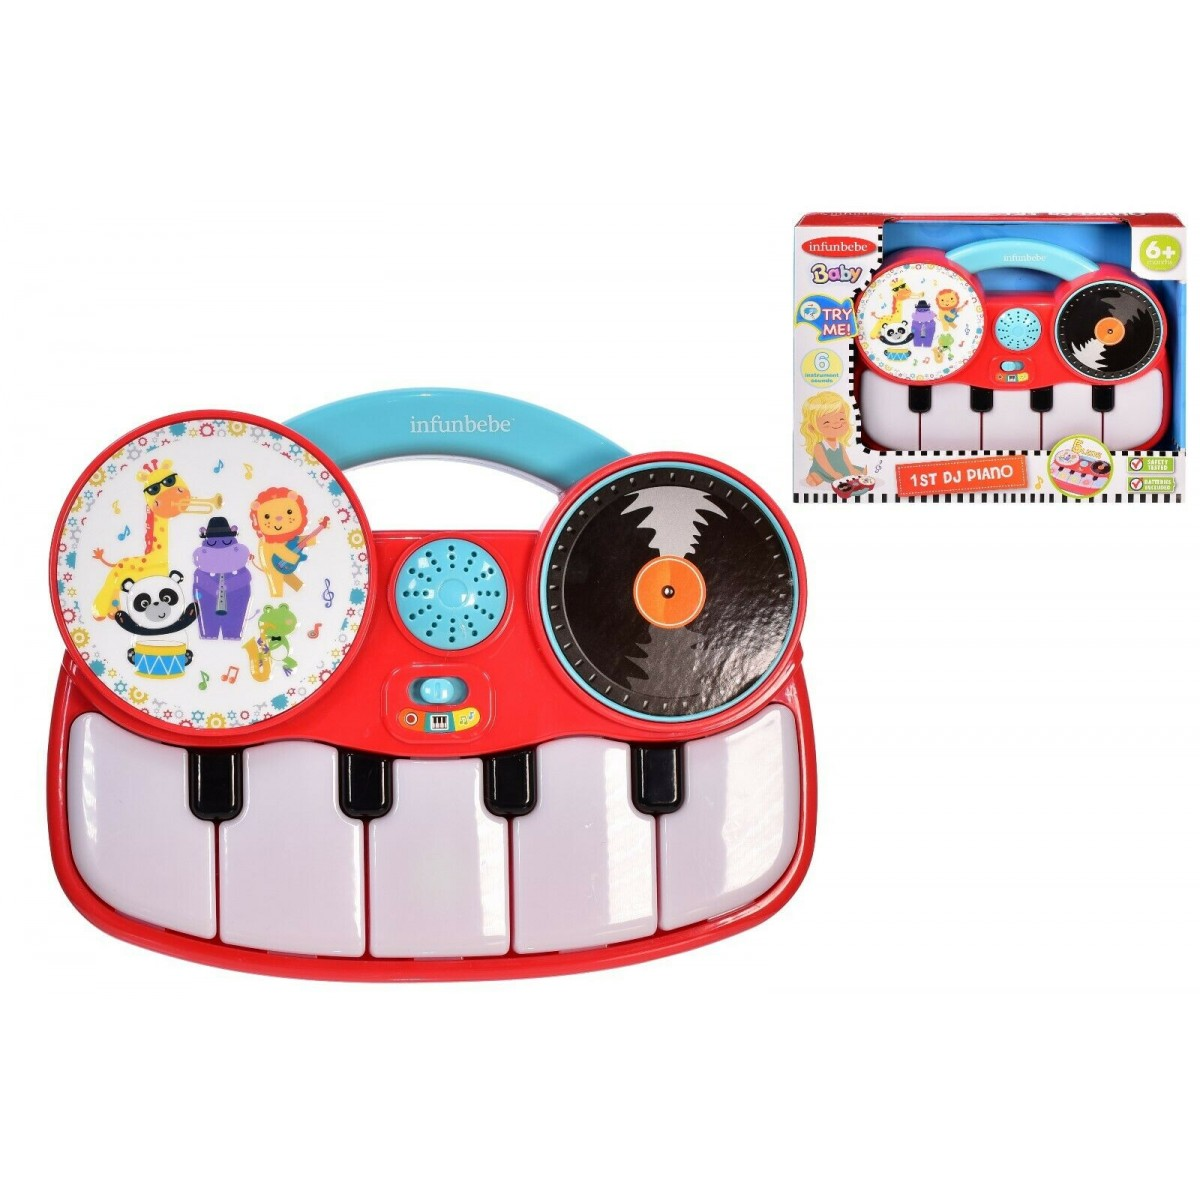 Infunbebe My First DJ Piano Toy for Baby 6m+